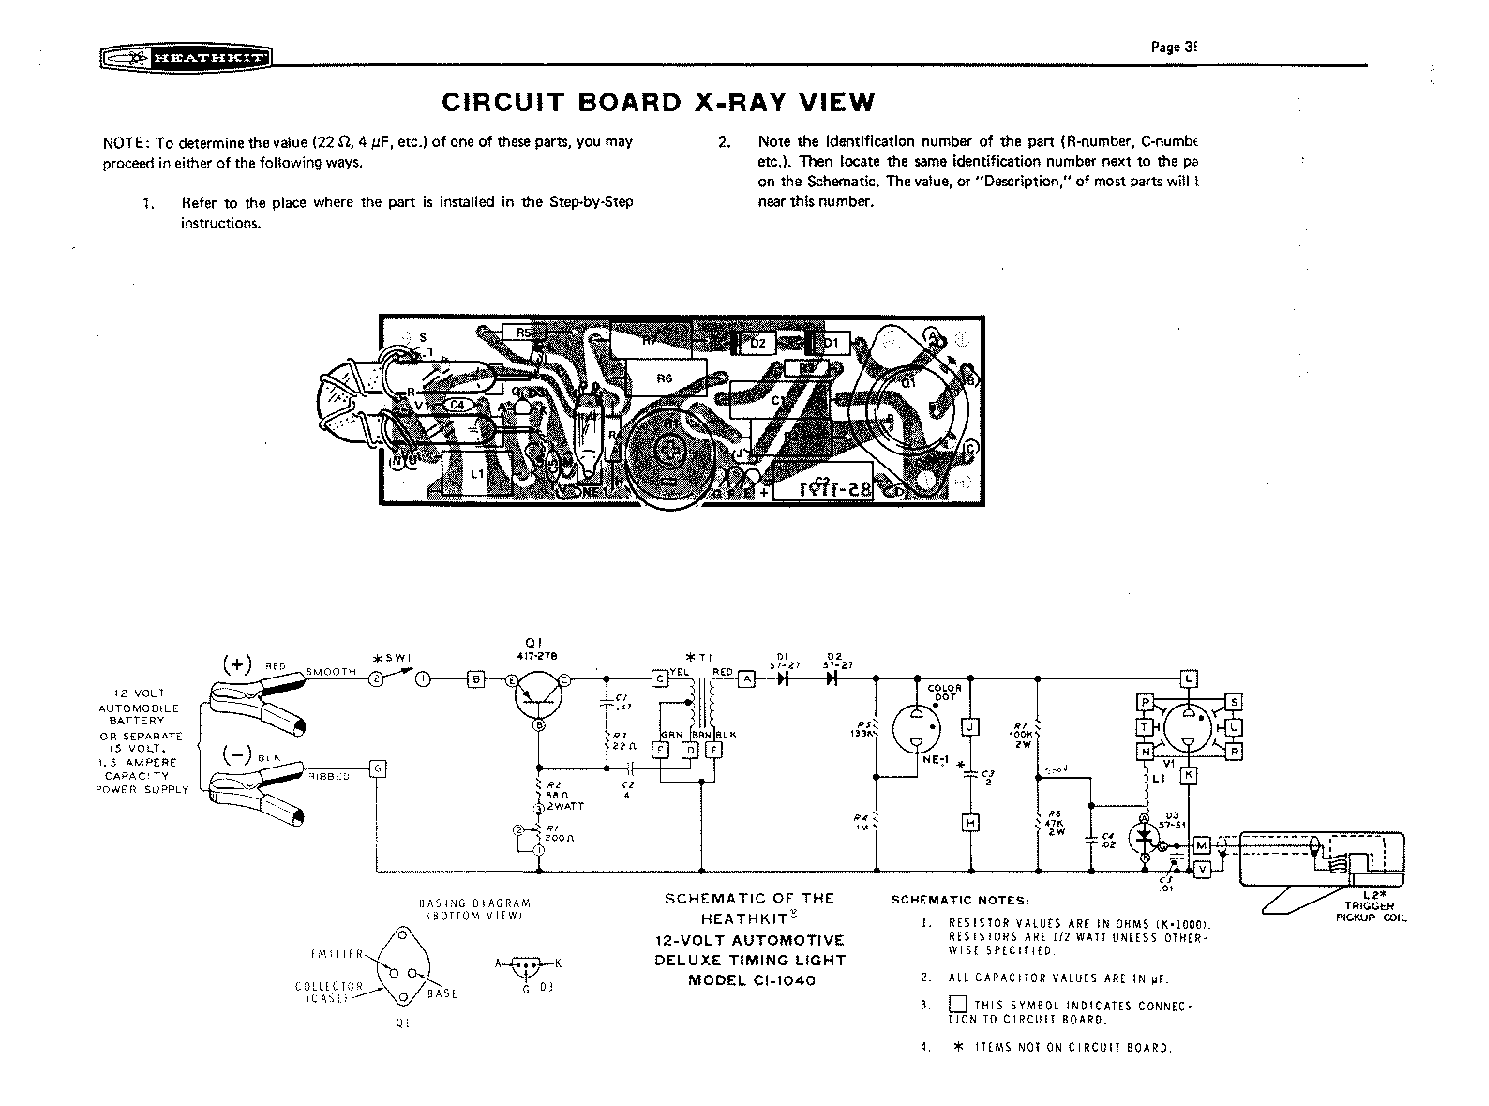 Heathkit Ci 1040 12v Automotive Timing Light 197p Gyujtasmero Timer Circuits Schematics Stroboszkop Sch Service Manual 1st